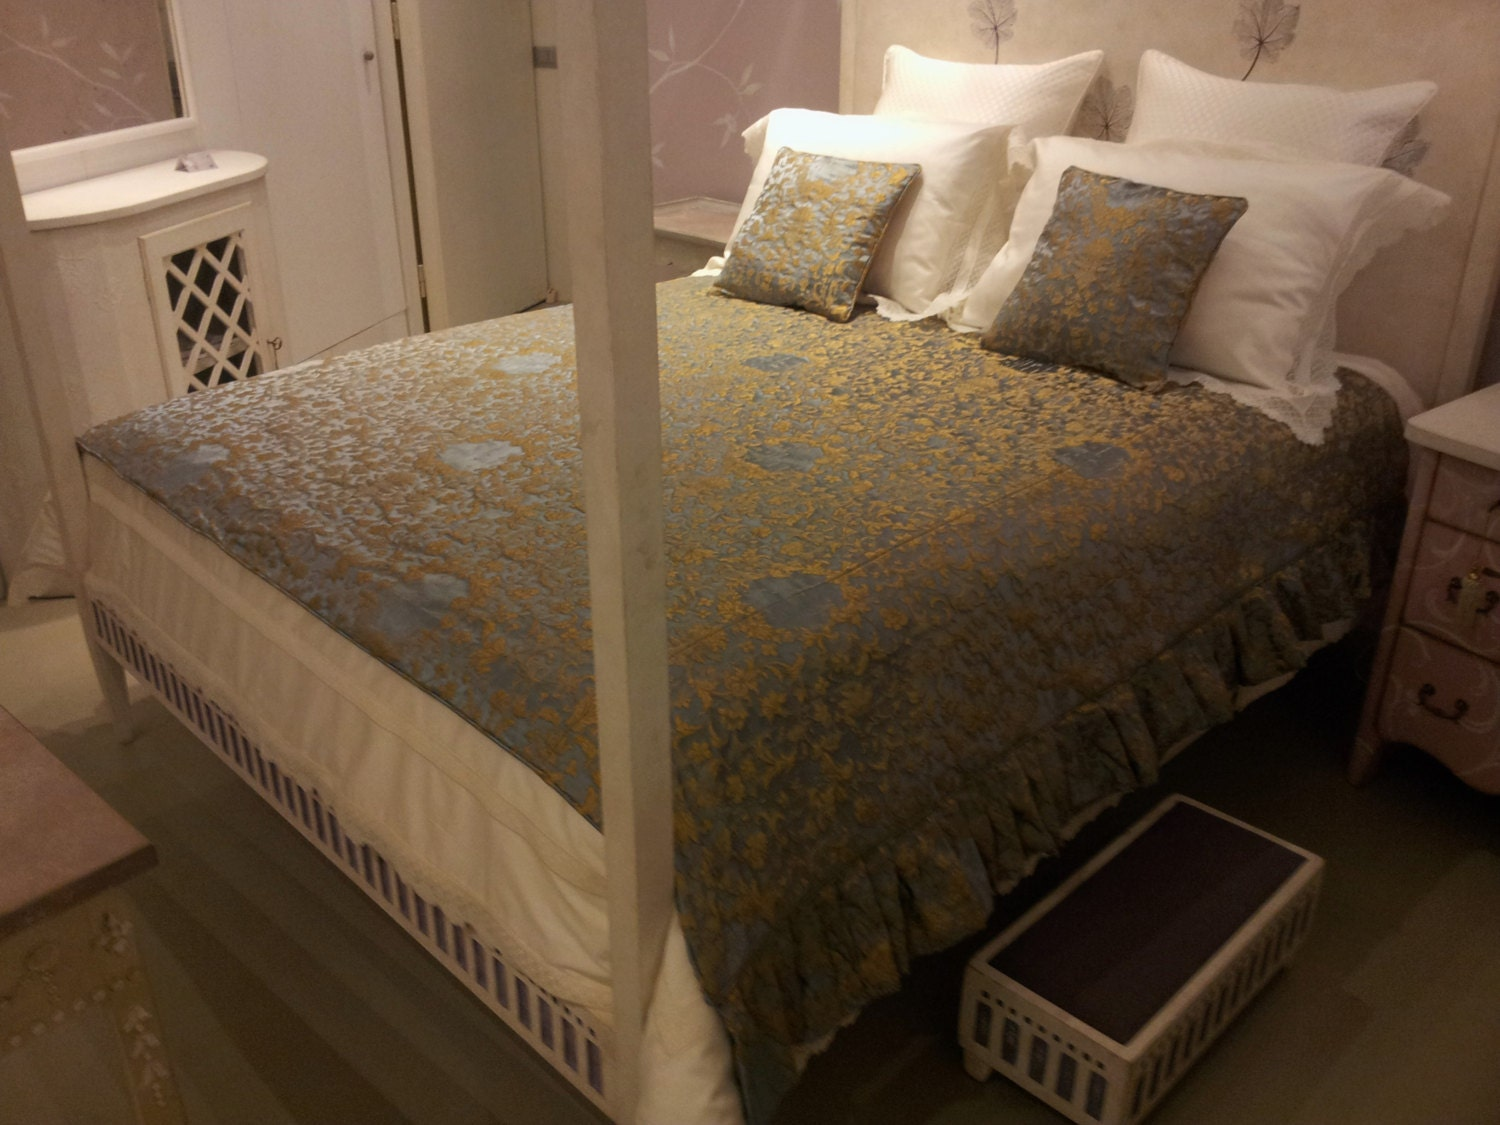 Luxury Custom Sized Bedspread For Four Poster Bed Blue Gold